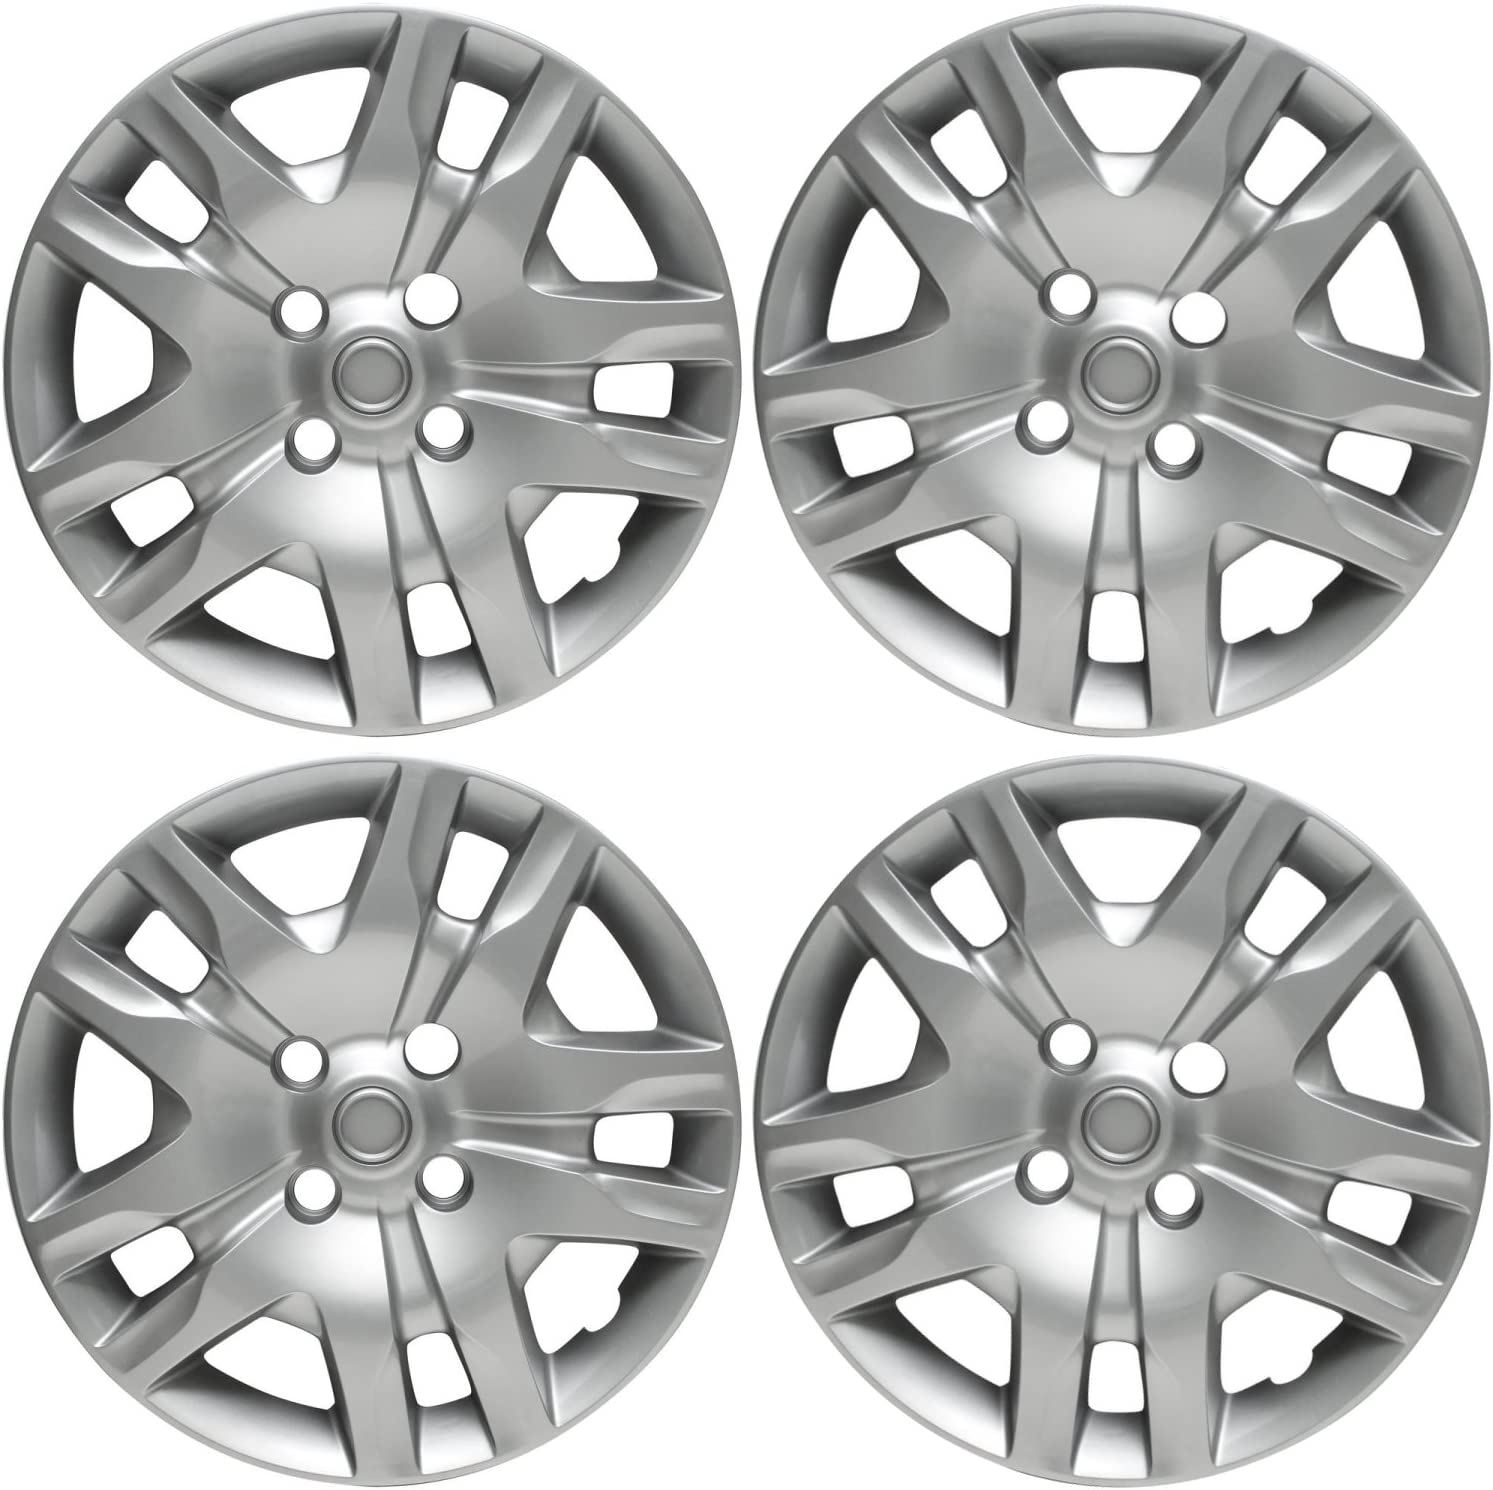 Silver 16 Bolt On Hub Cap Wheel Covers For Nissan Sentra Set Of 4 Hubs Spindles Amazon Canada